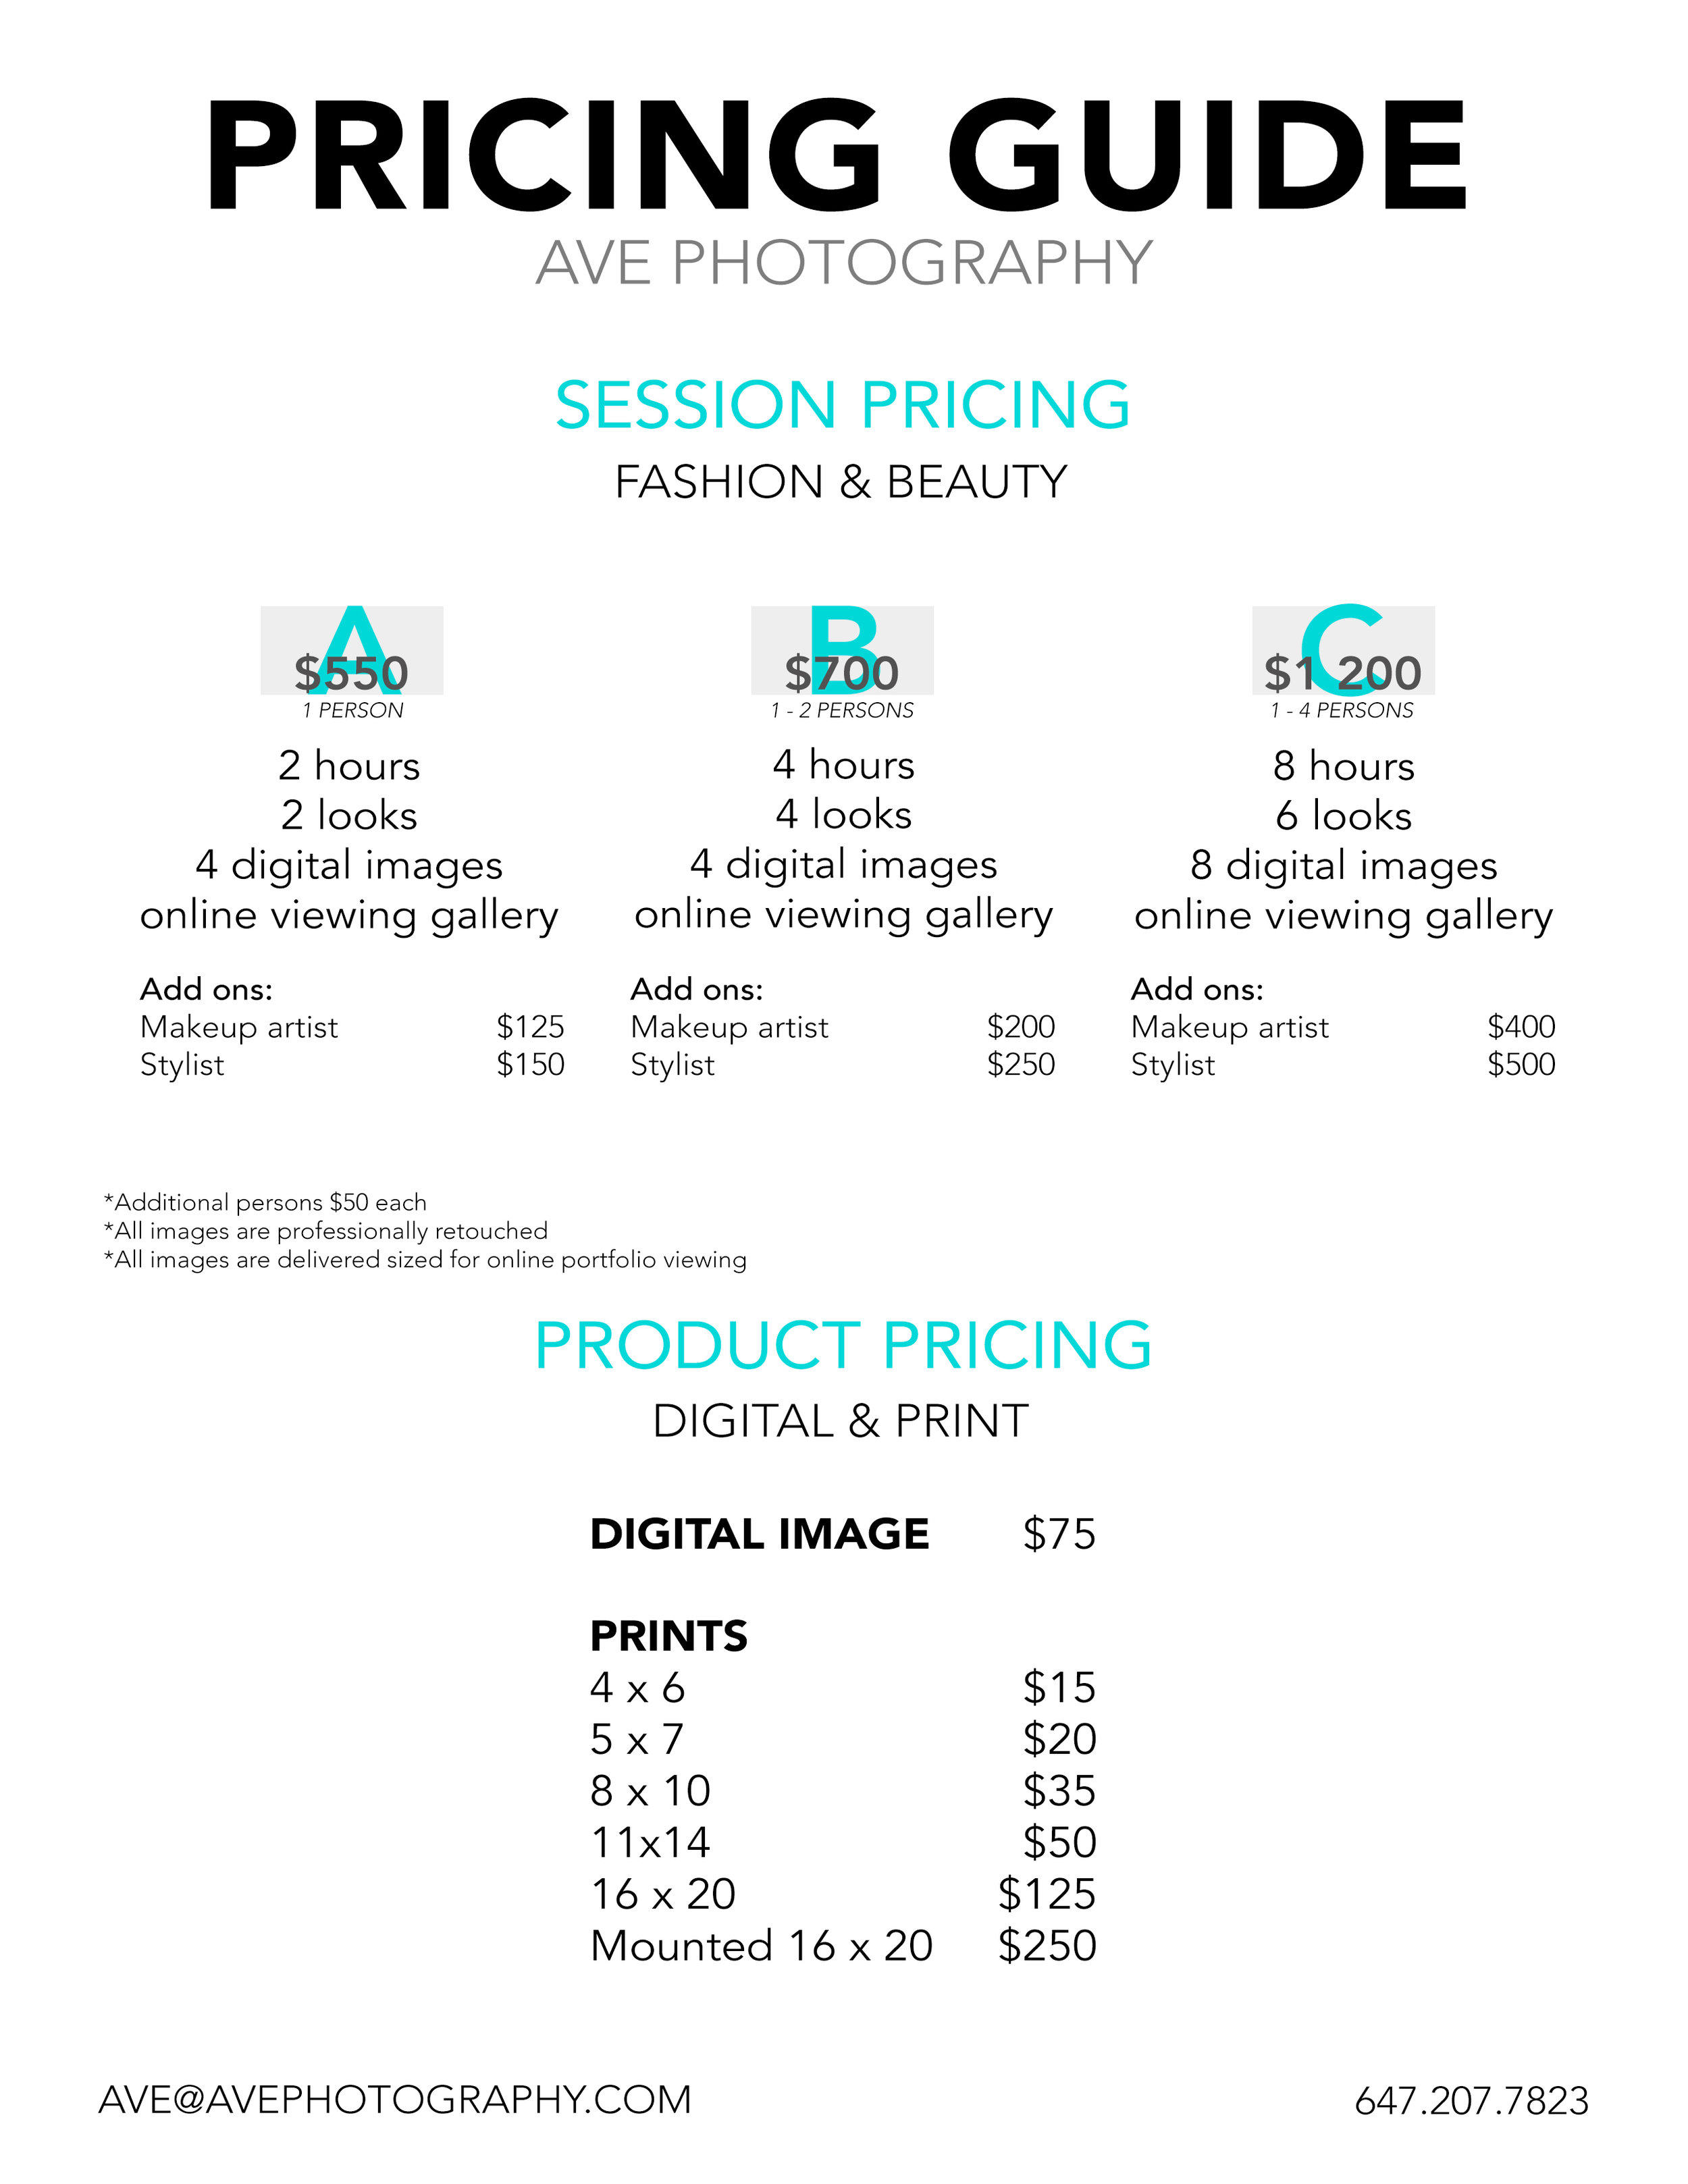 PRICING GUIDE 2019.JPG